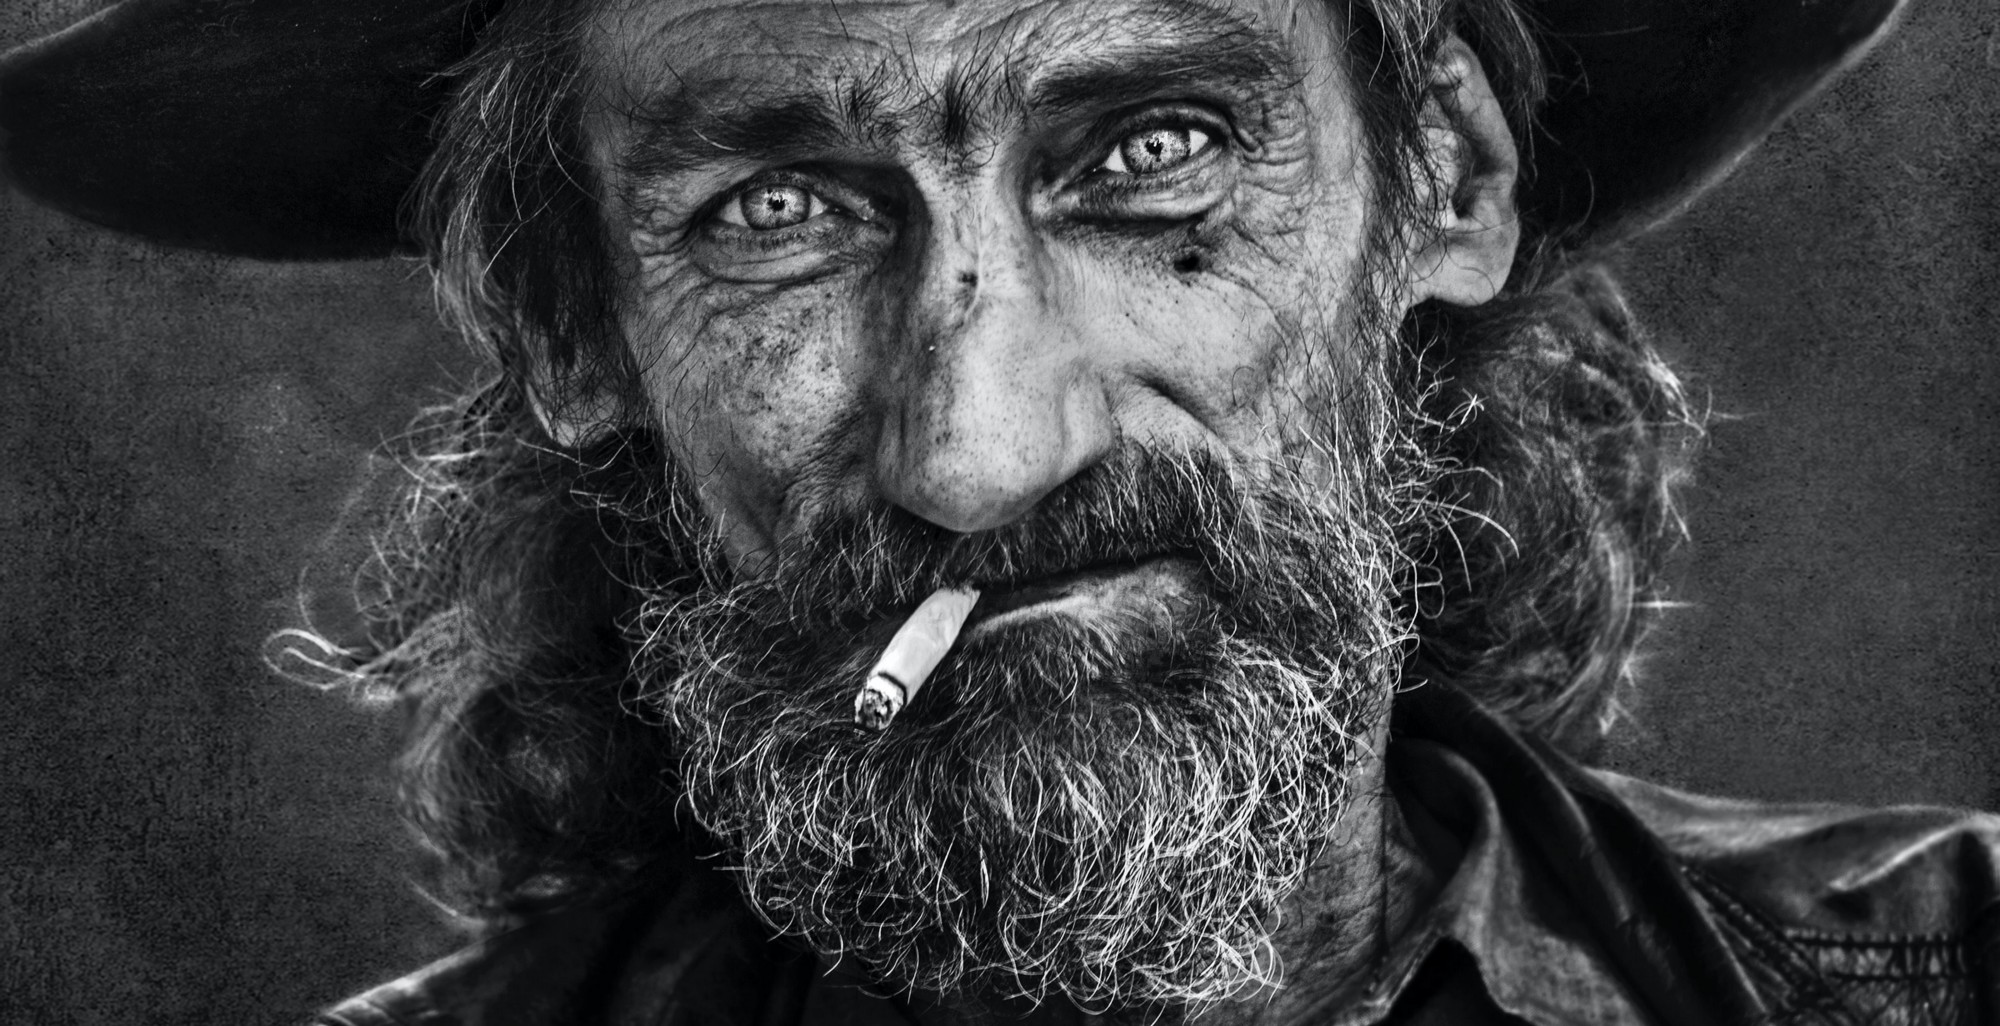 Stunning black and white image of an aged man with a beard and burning cigarette